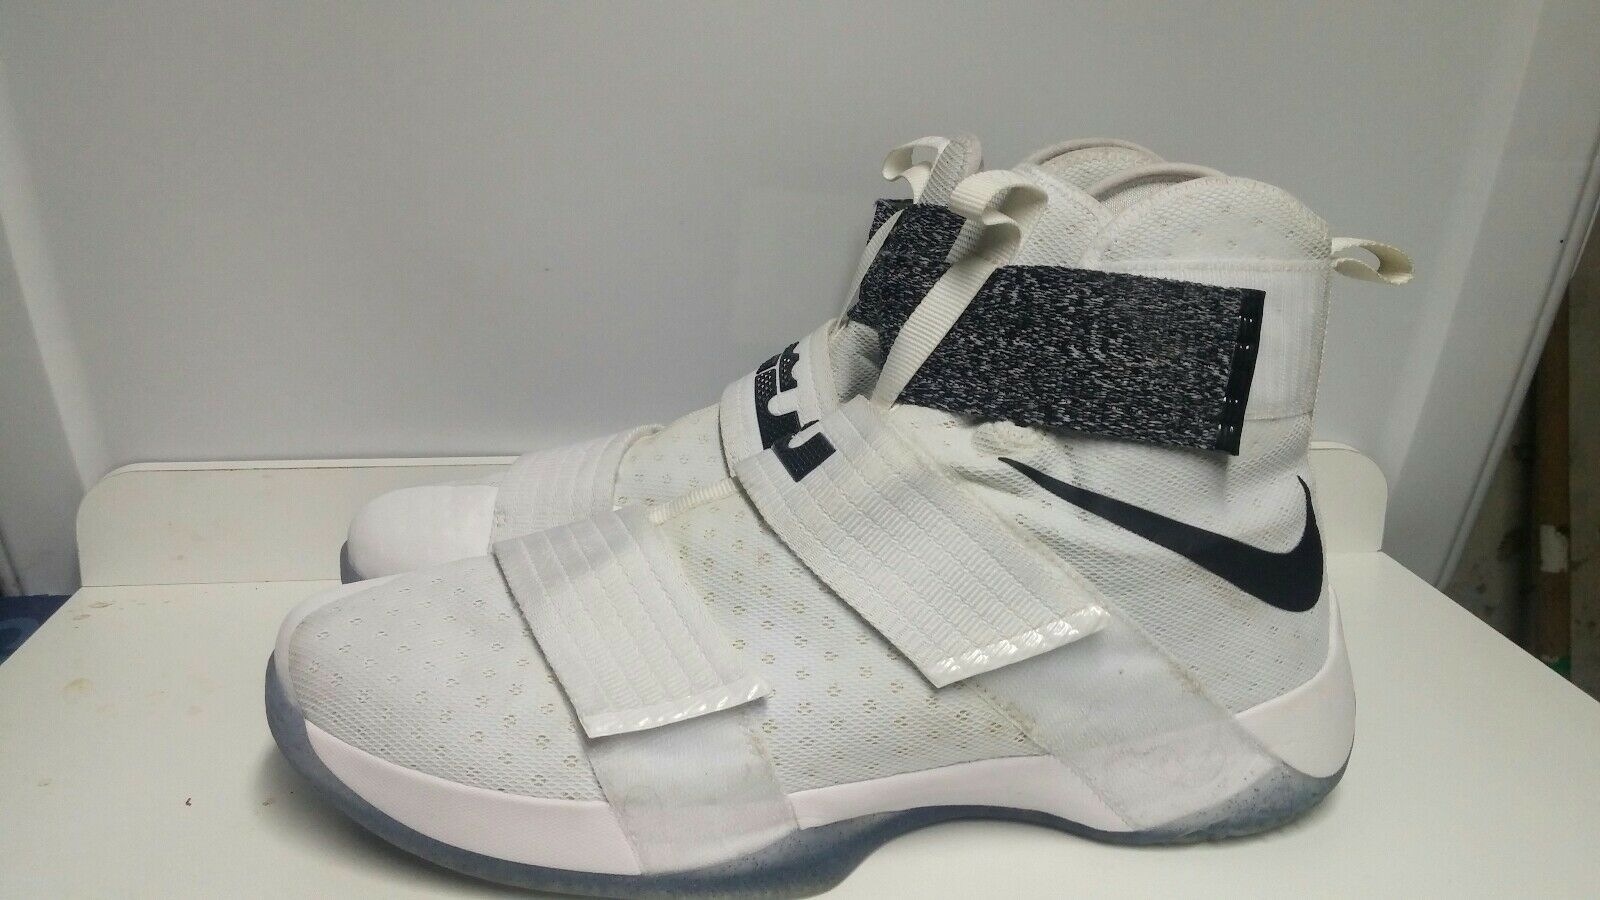 new style 7f06f 68c91 NIKE Lebron James Soldier X Men Basketball shoes Sz US 17